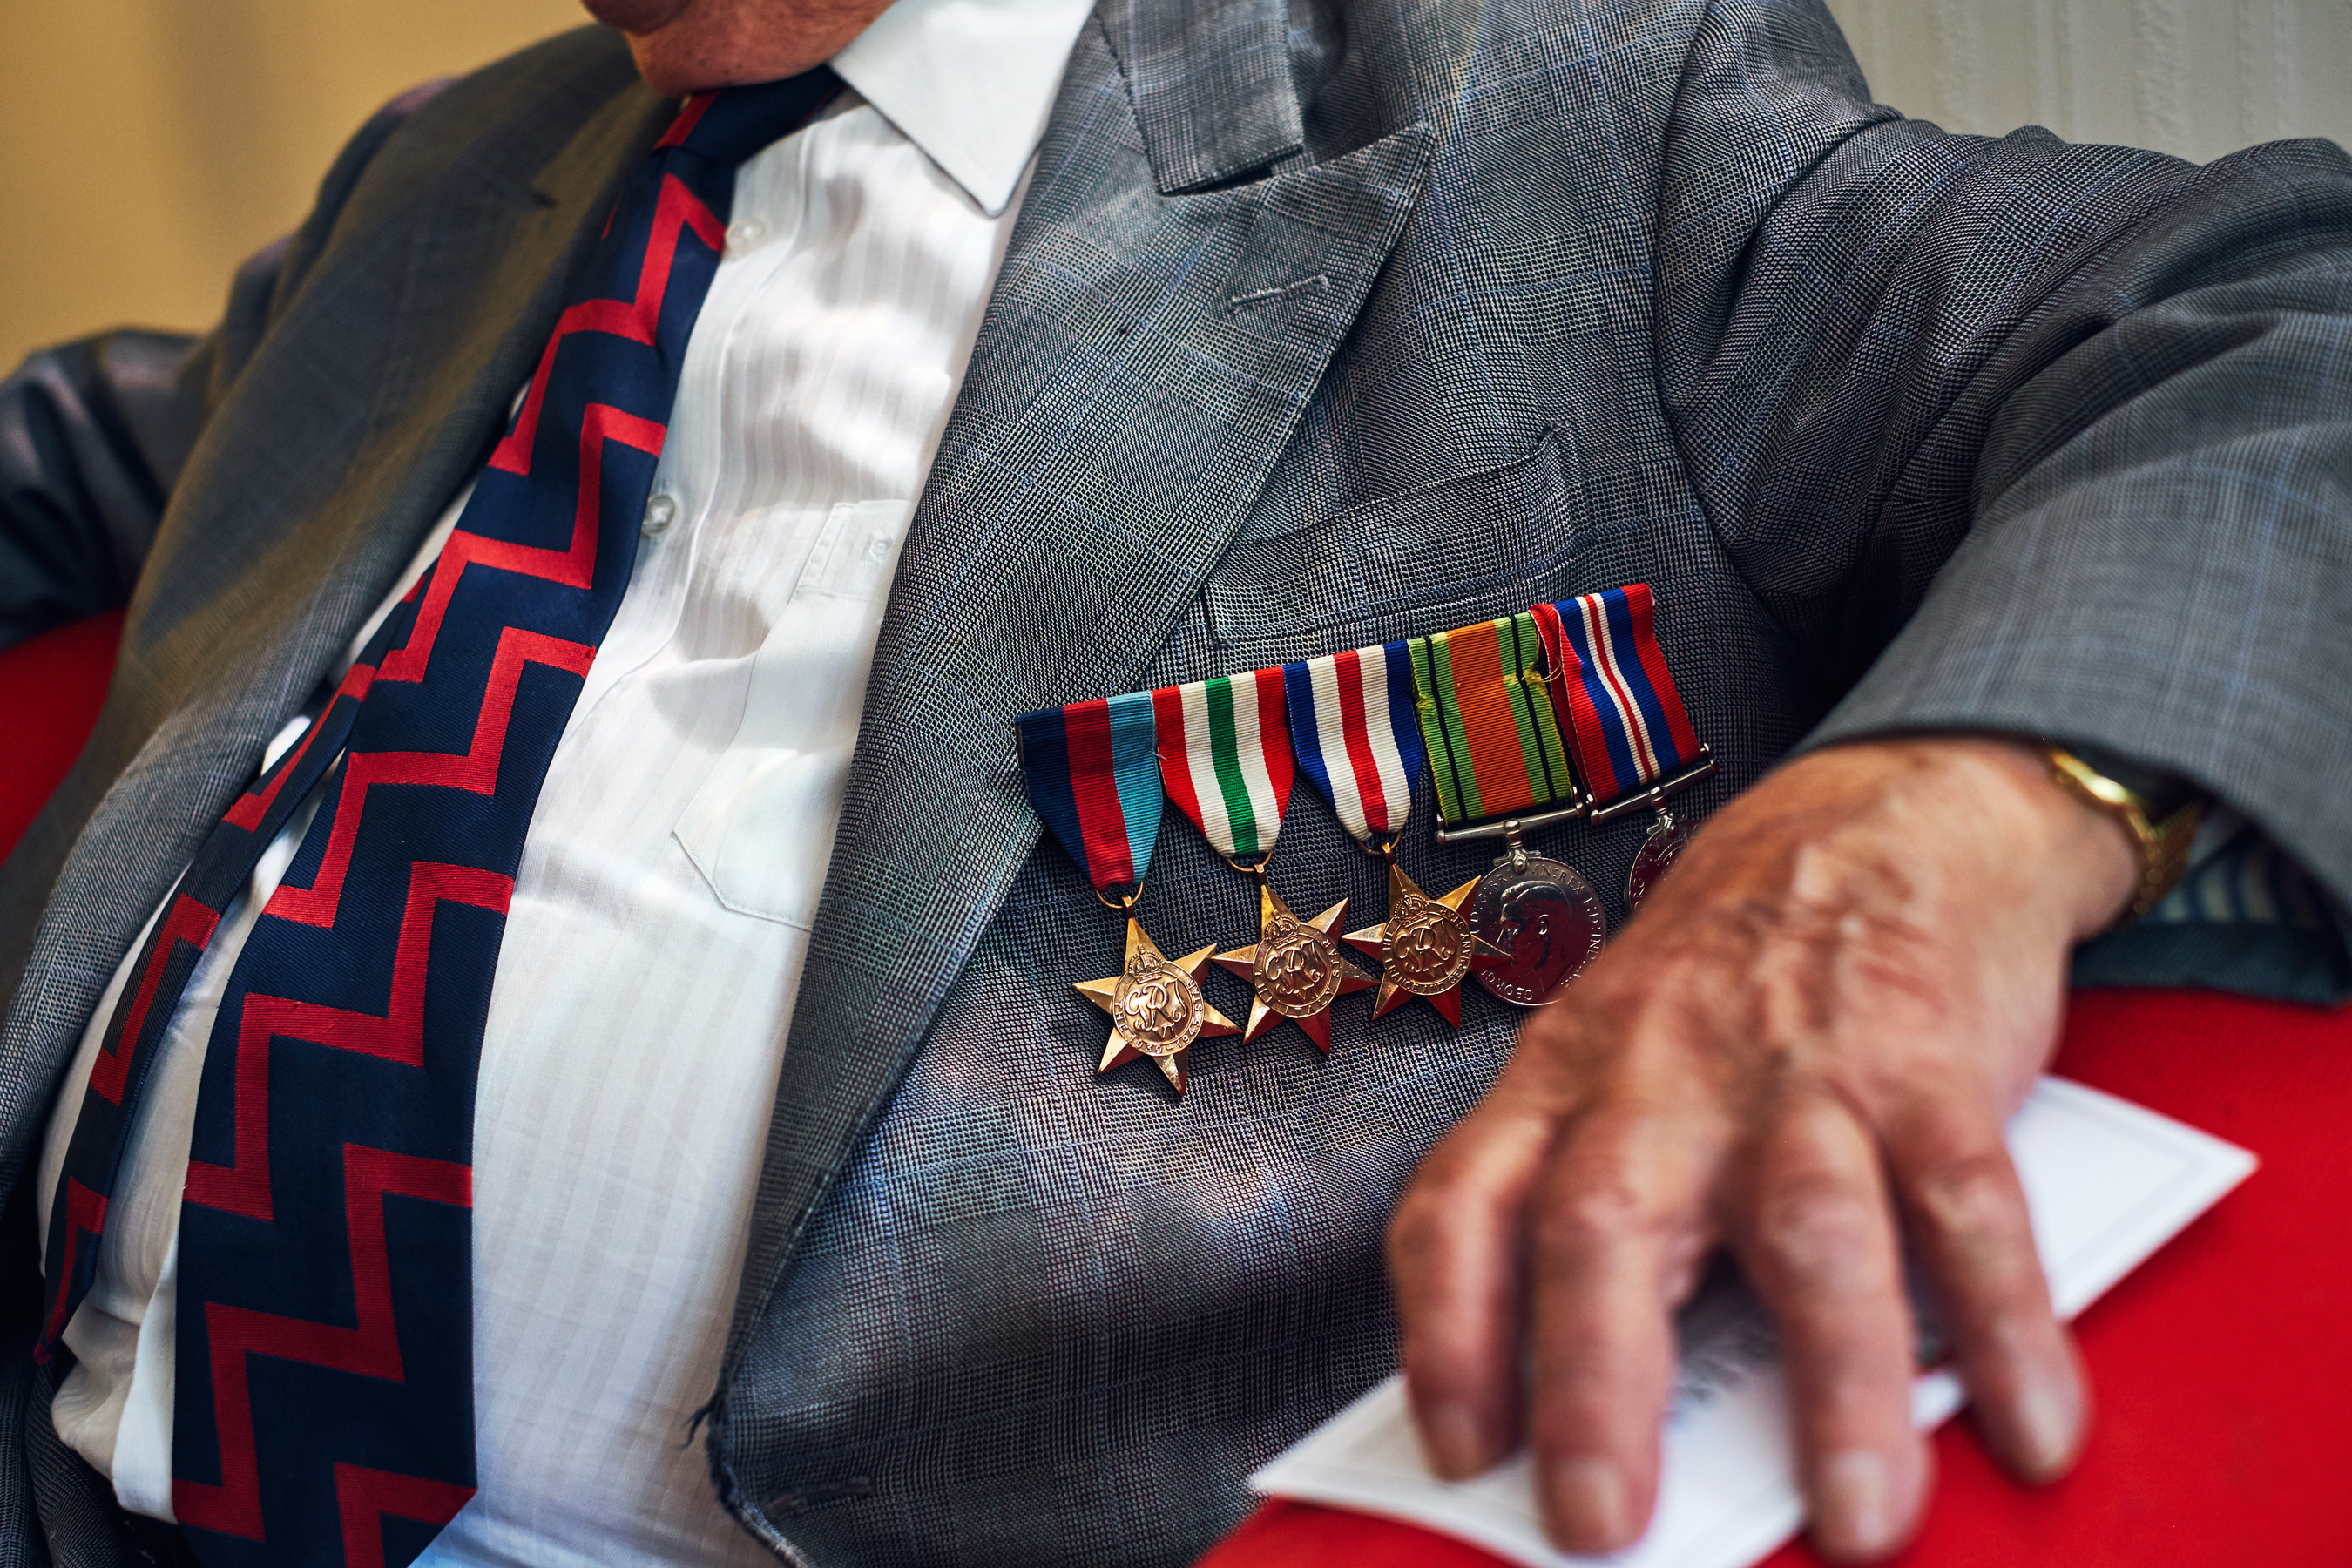 Matt-Stansfield-Photographer-lifestyle-portrait-Royal-British-Legion-Veteran-727